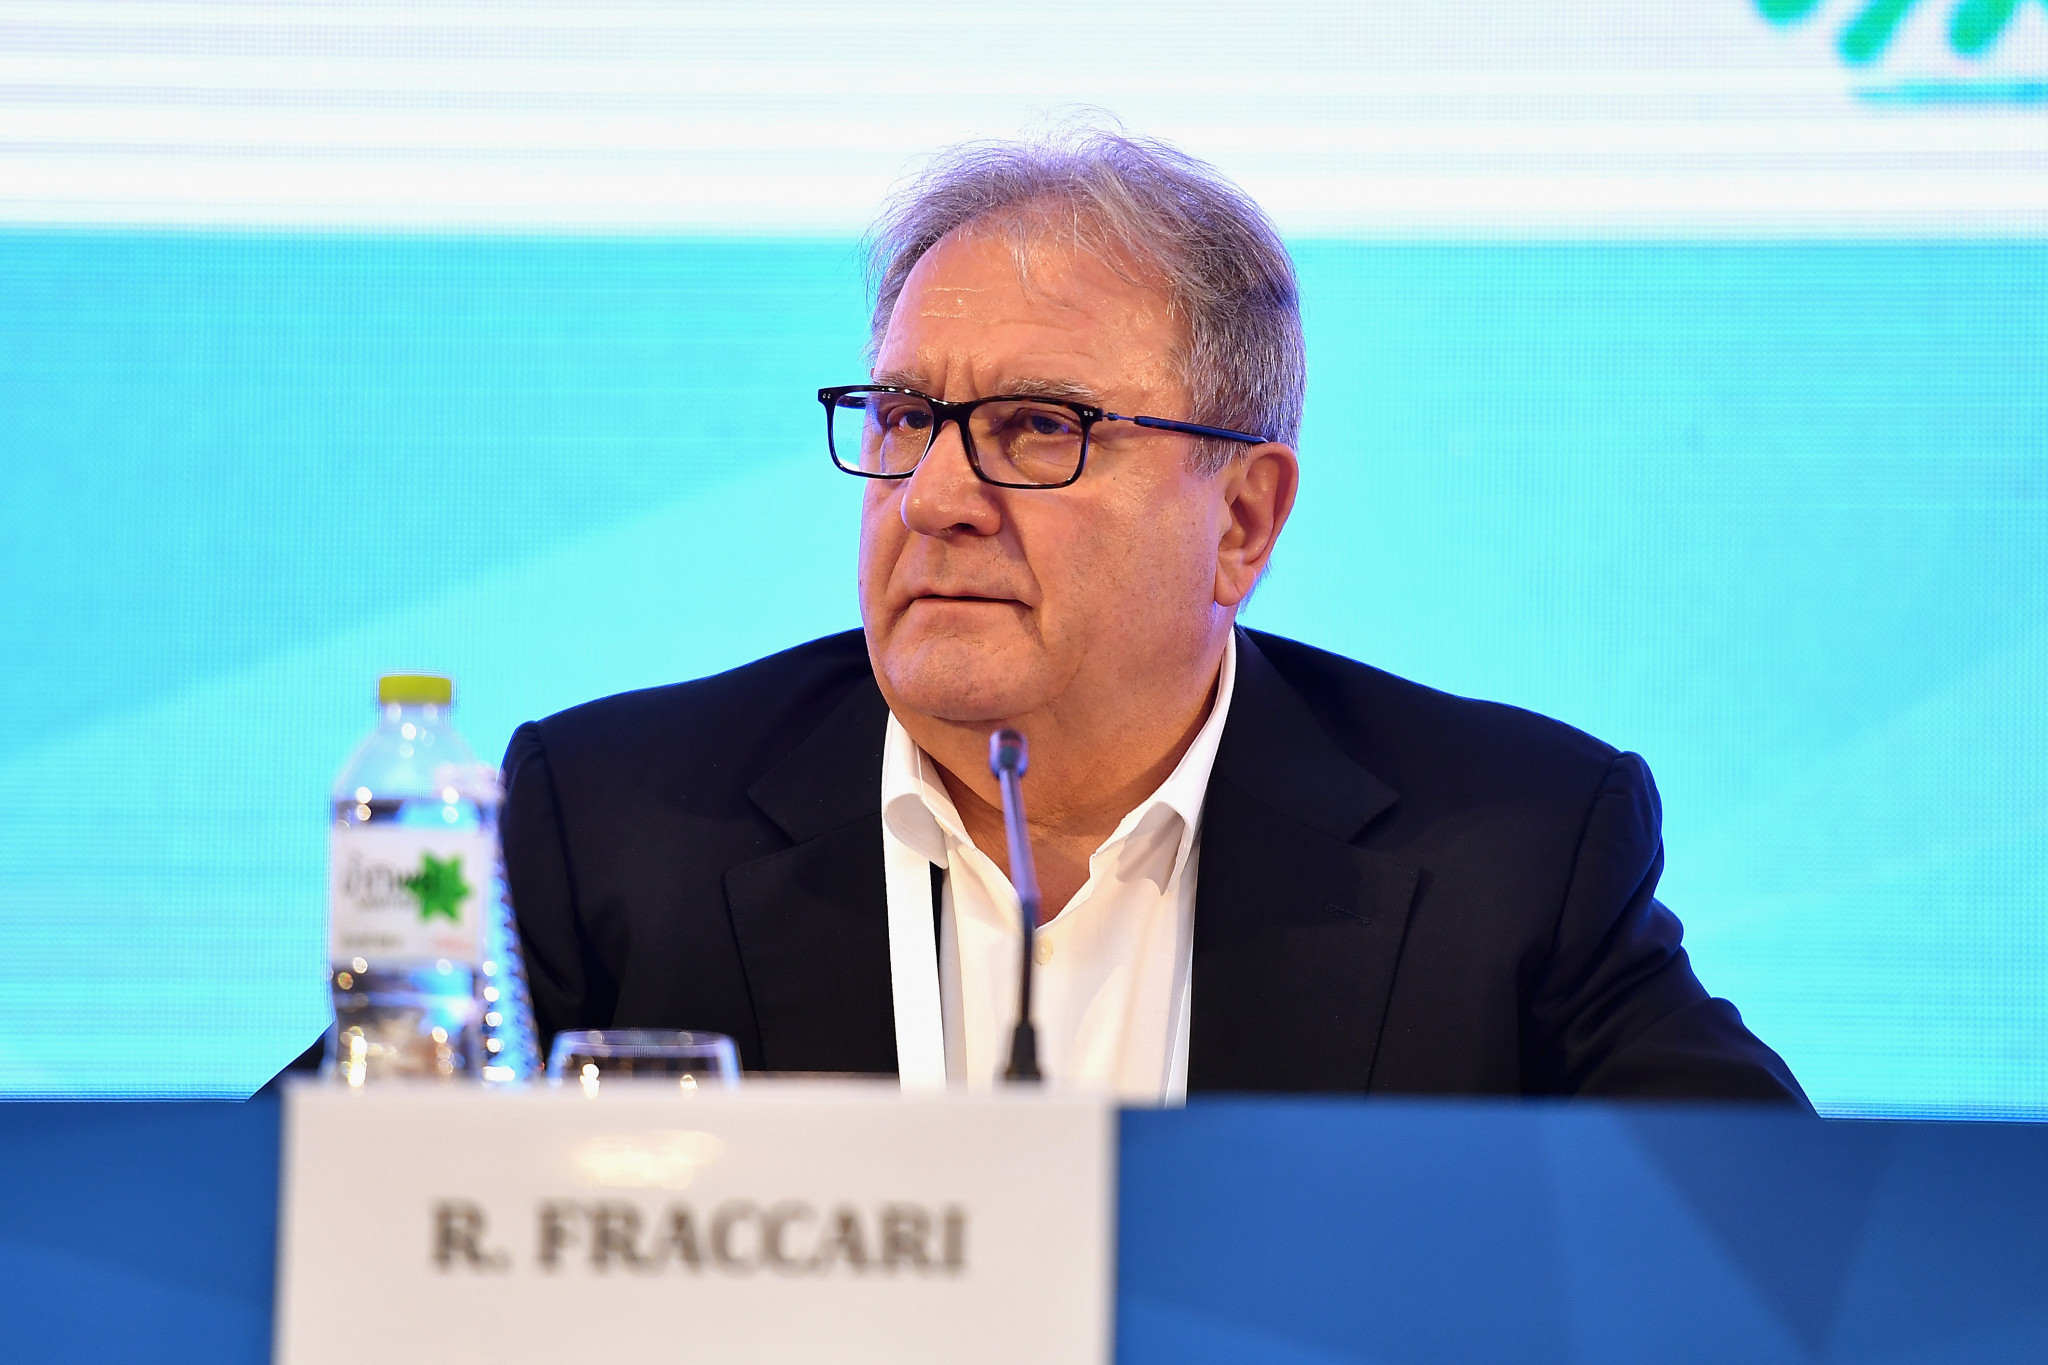 Riccardo Fraccari was appointed as secretary general of the Association of IOC Recognised International Sports Federations (ARISF) ©Getty Images